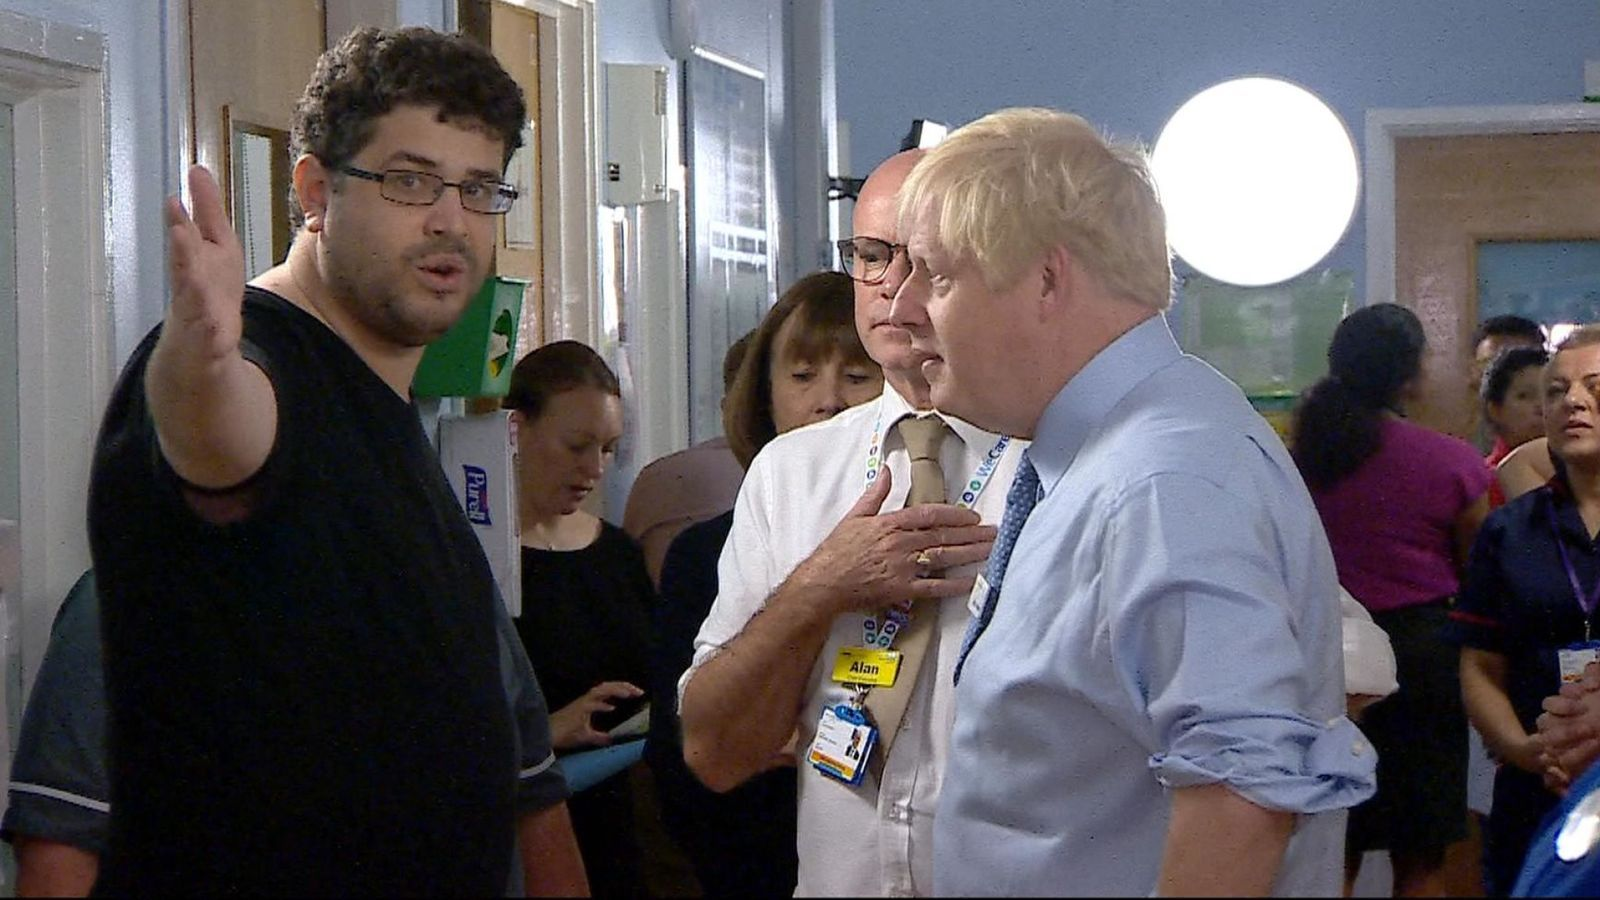 Boris Johnson's hospital visit has sparked outrage